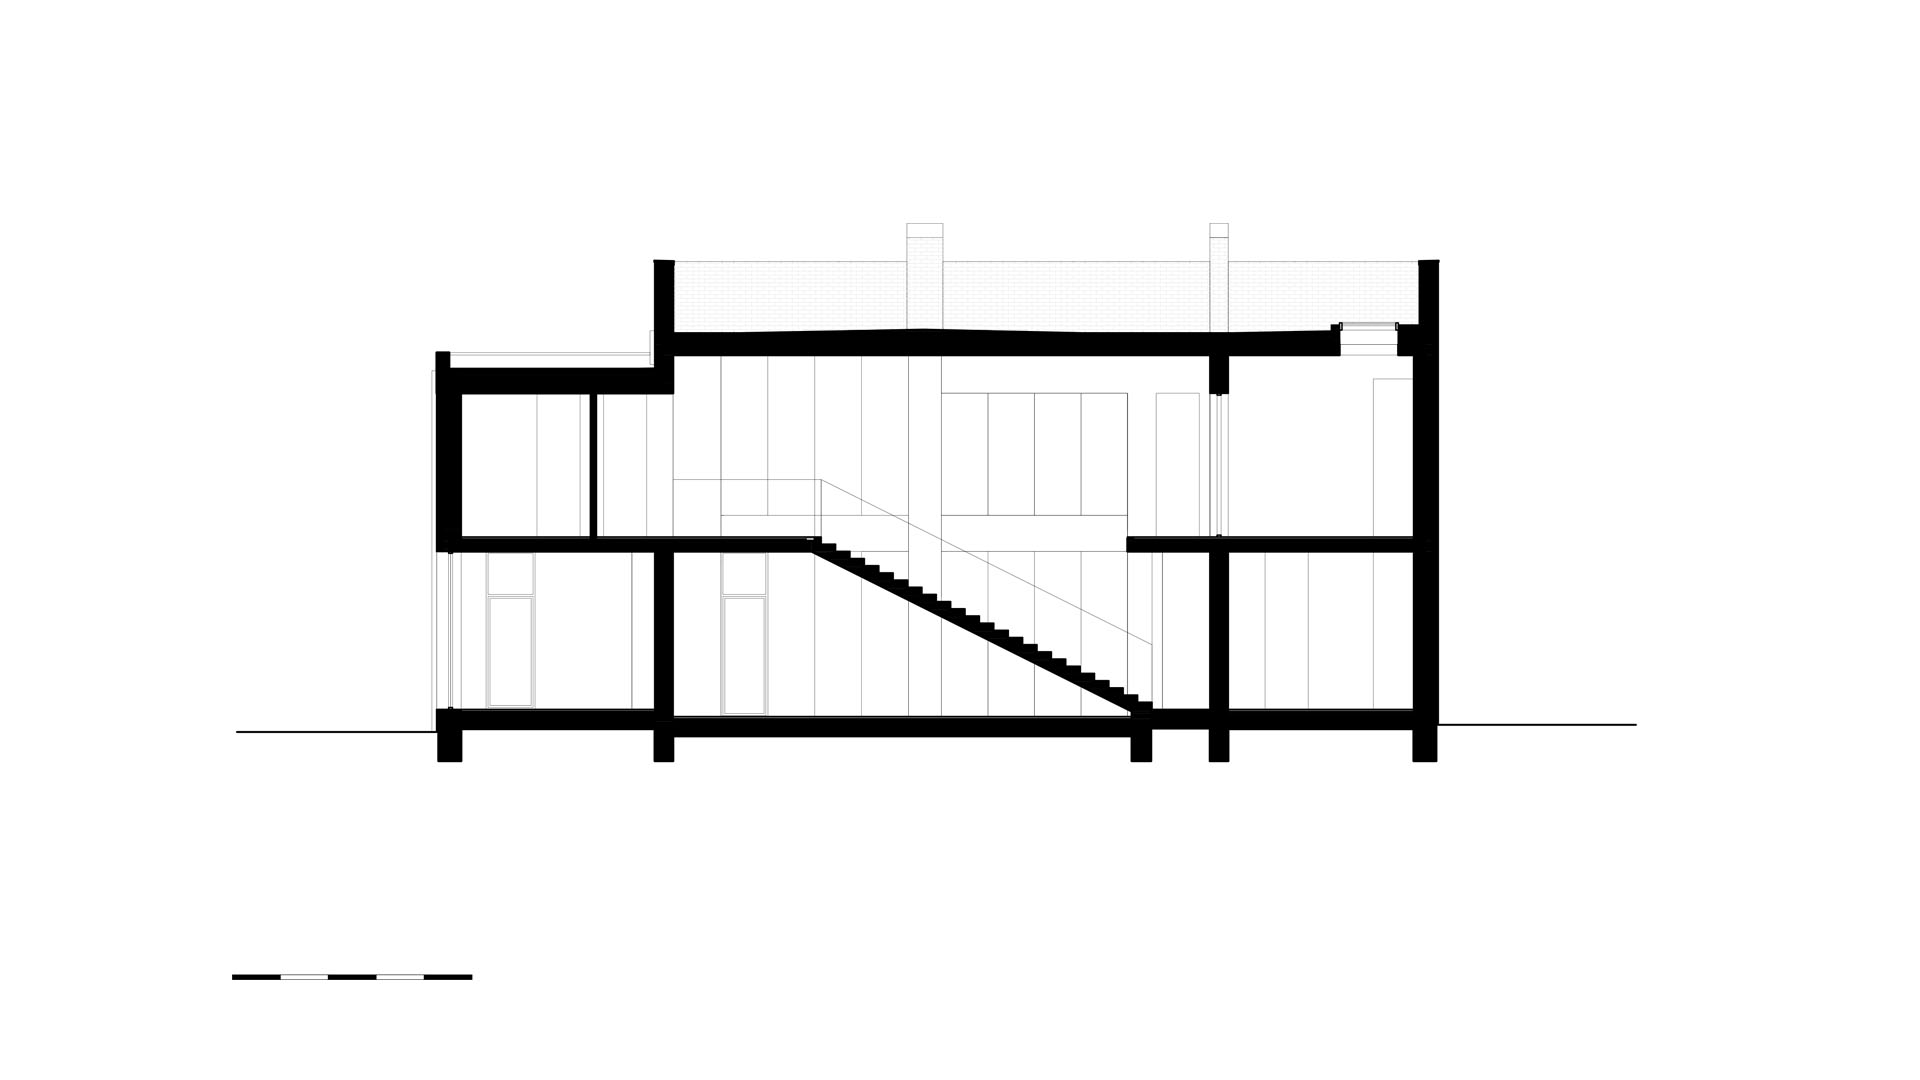 the design of the house